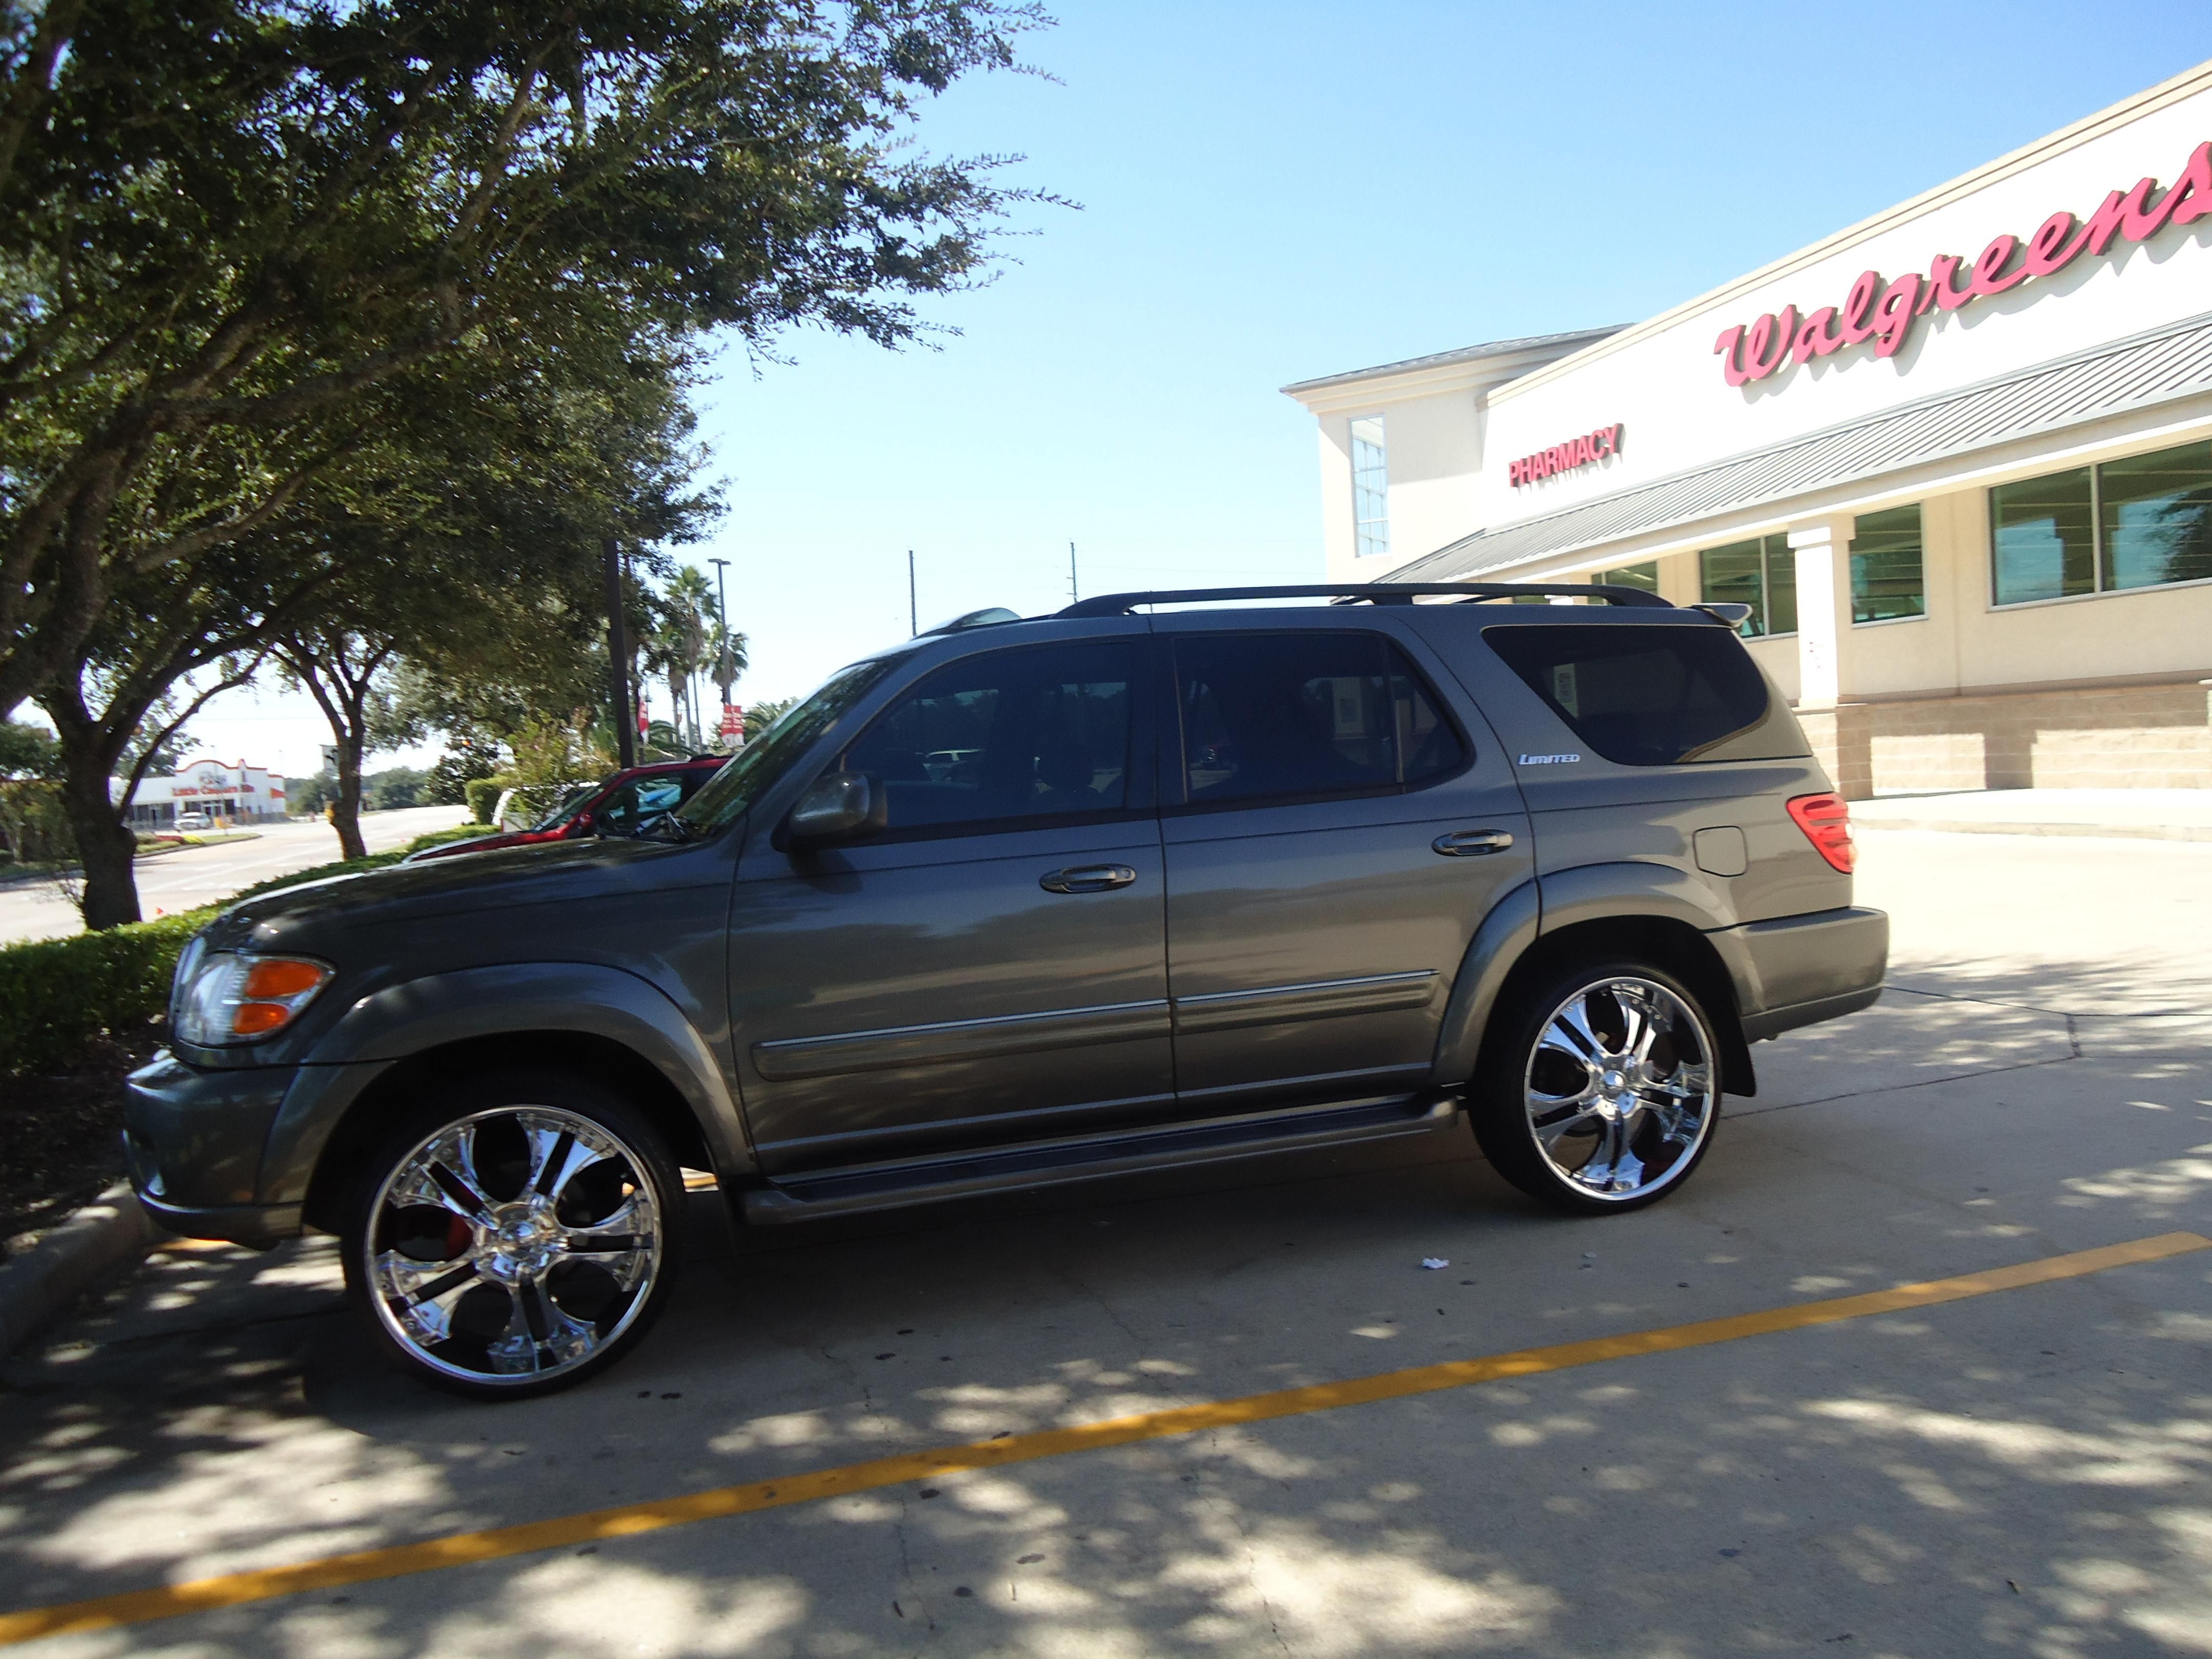 2002 Toyota Sequoia Limited with rims Toyota, Sequoia